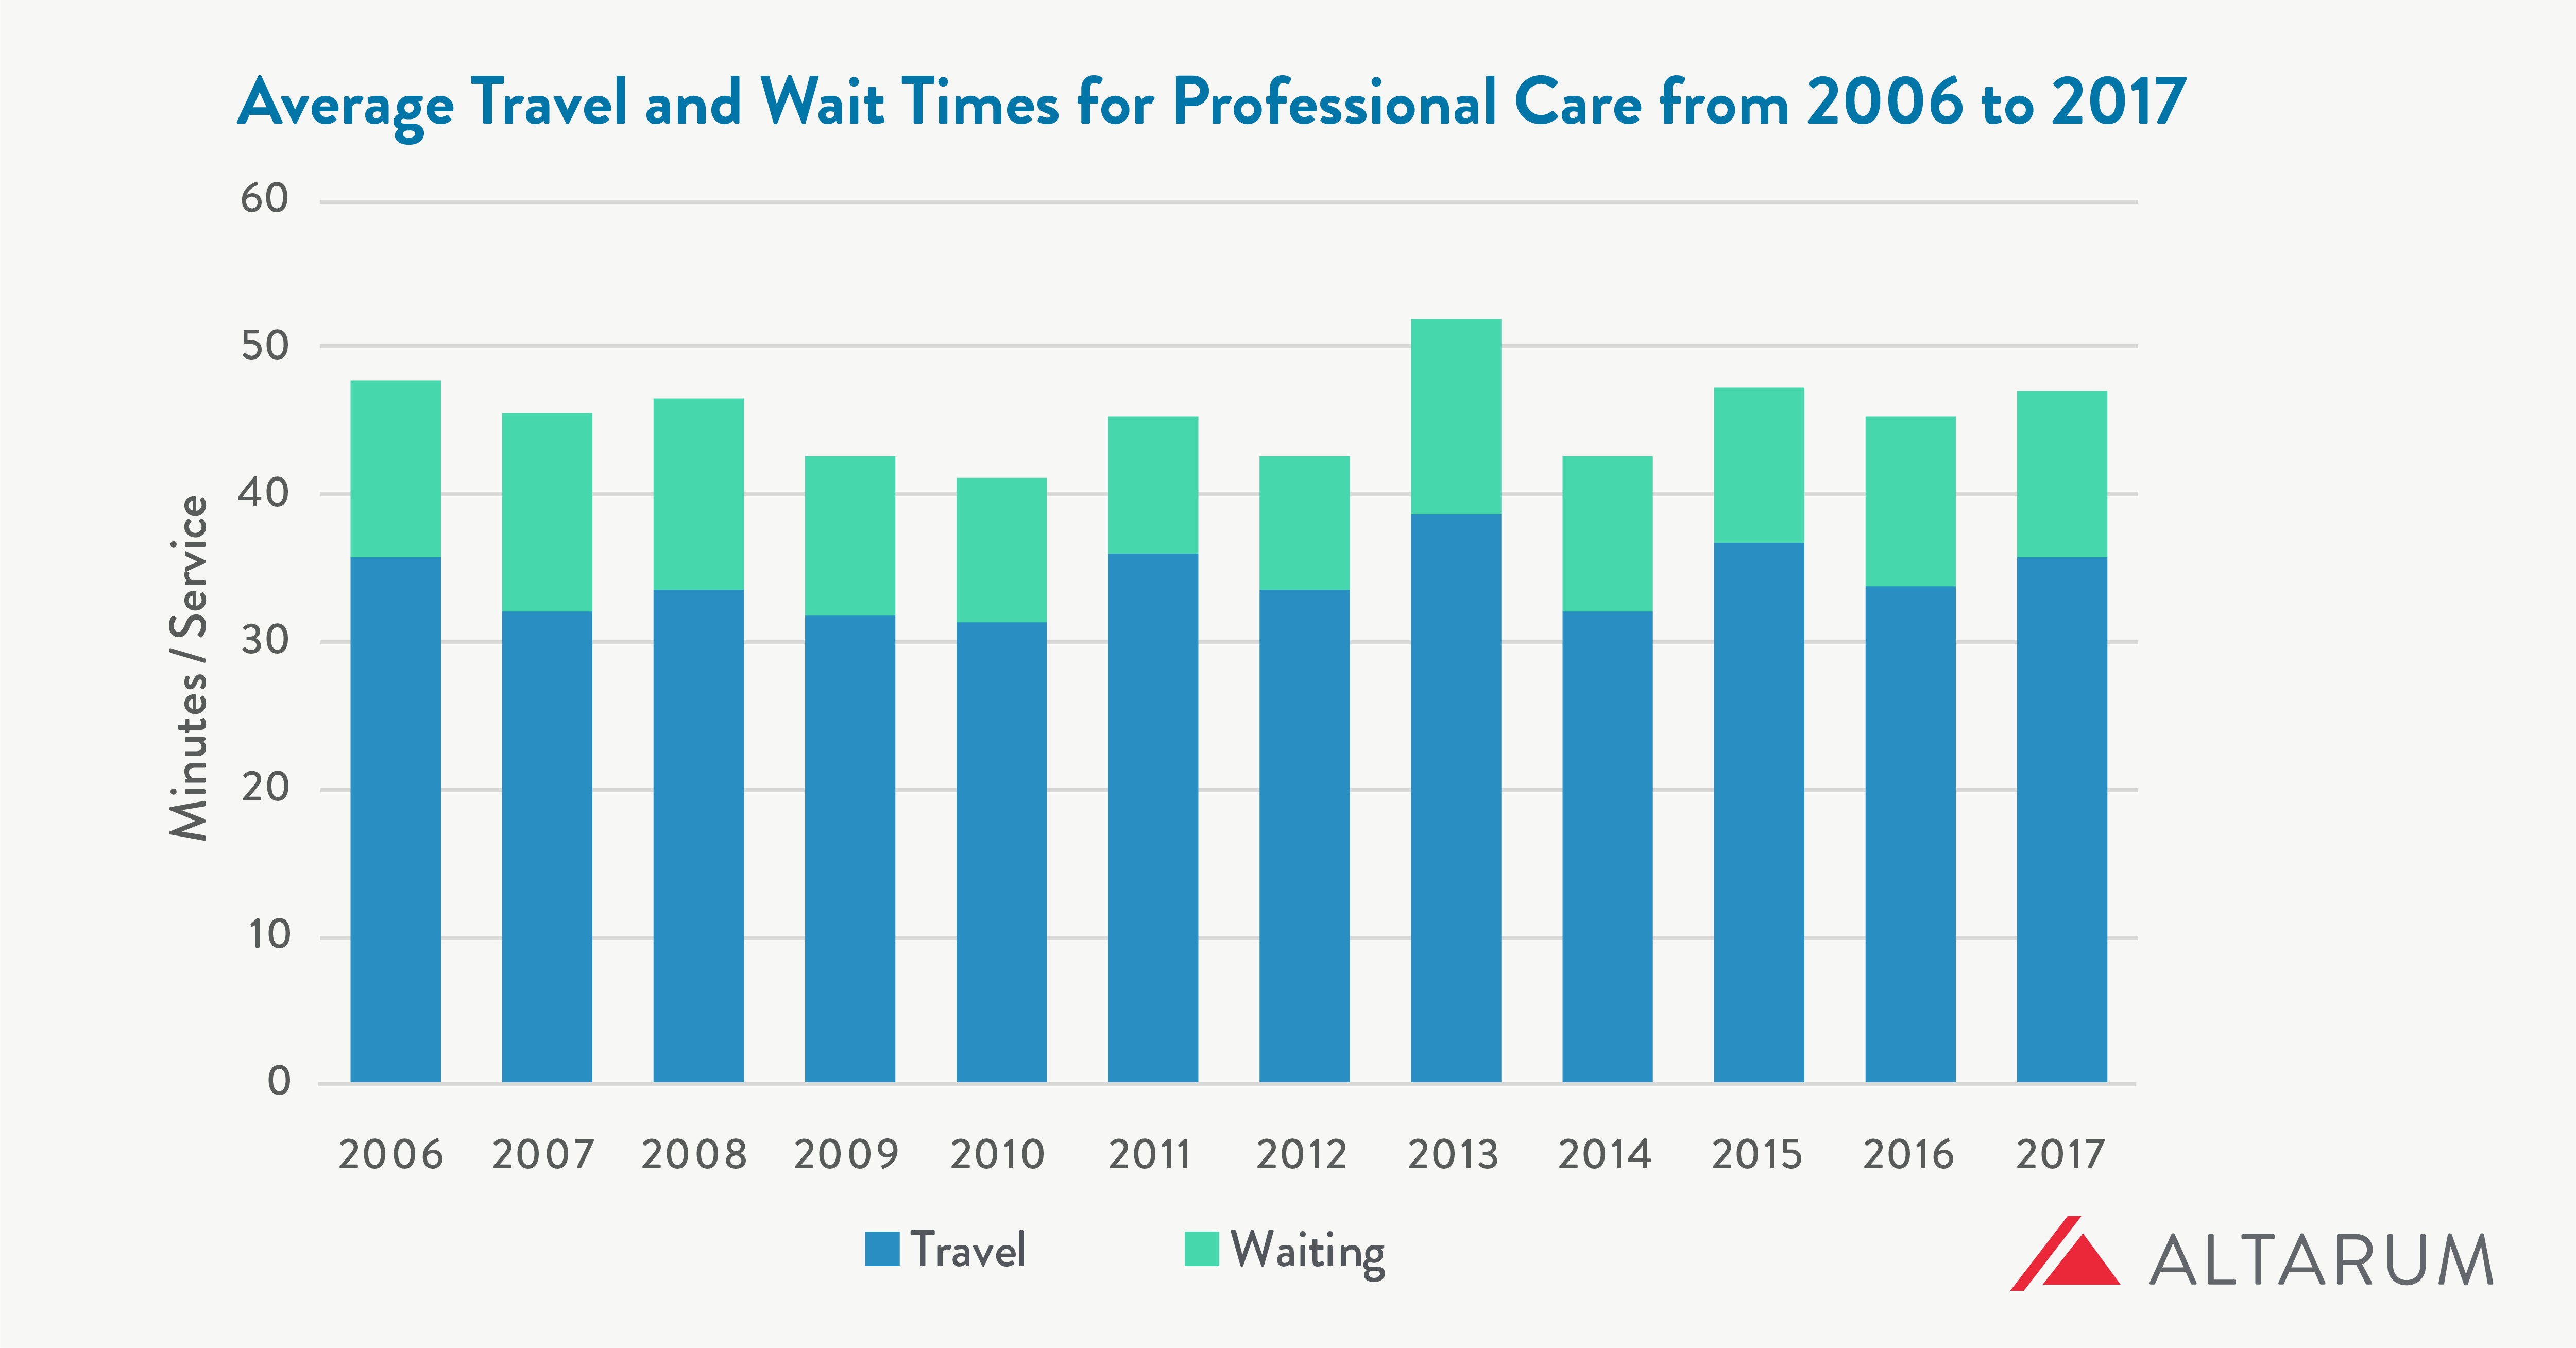 Chart showing average travel and wait times for professional care remain constant from 2006 to 2017